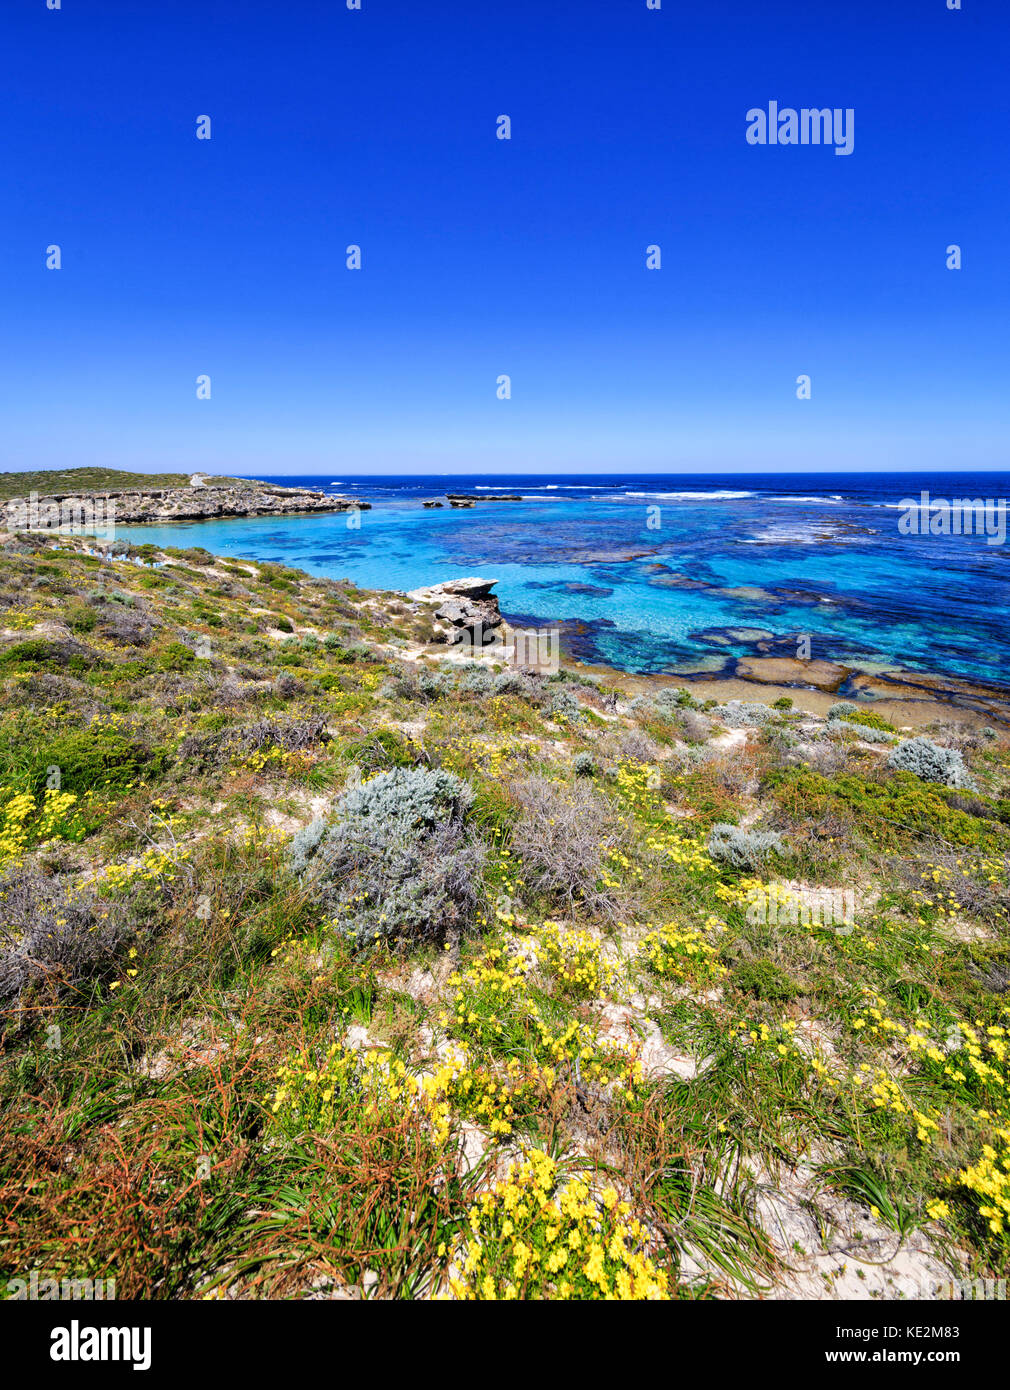 Beautiful clear waters at Salmon Point on Rottnest Island, Australia - Stock Image